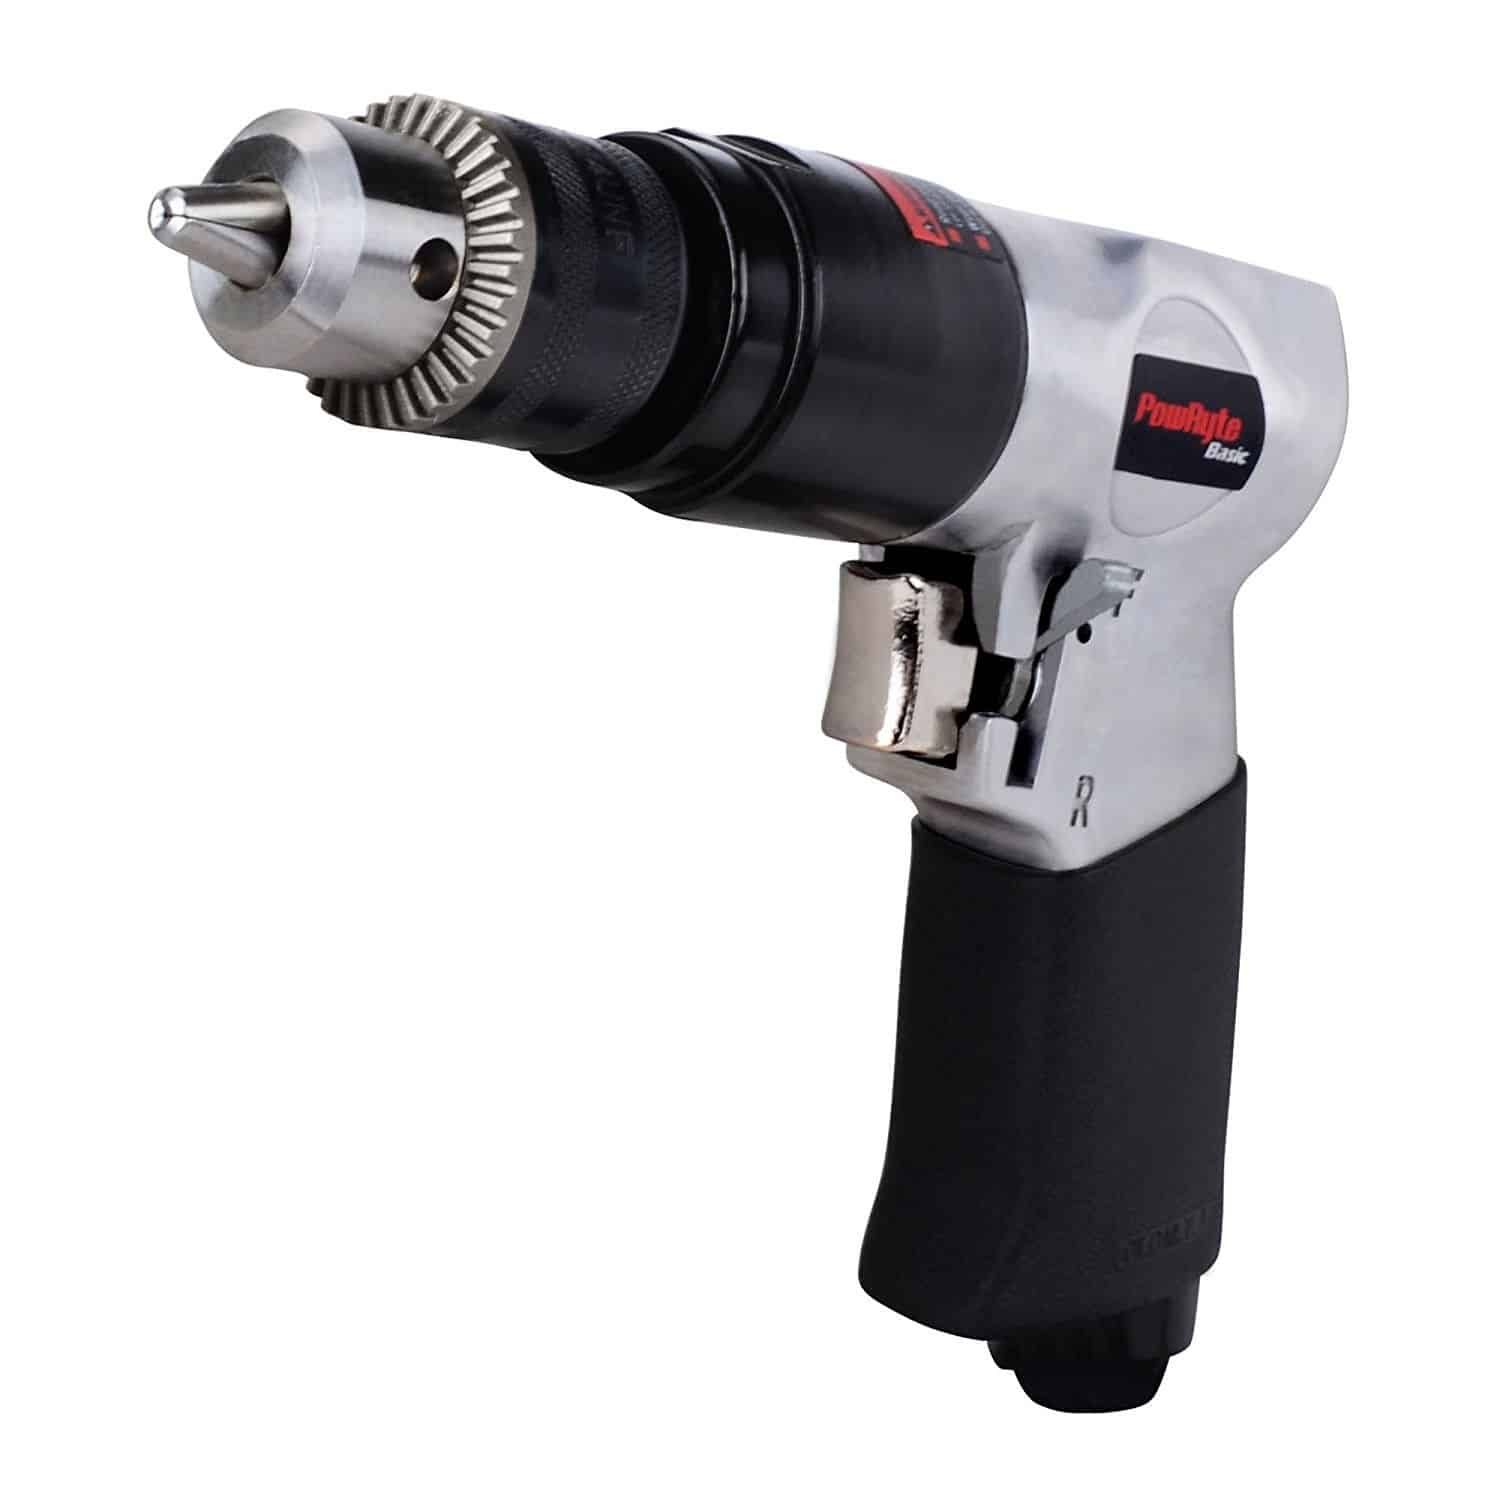 3/8-inch reversible air drill with forward/reverse switch for one-handed direction changes and exhaust.